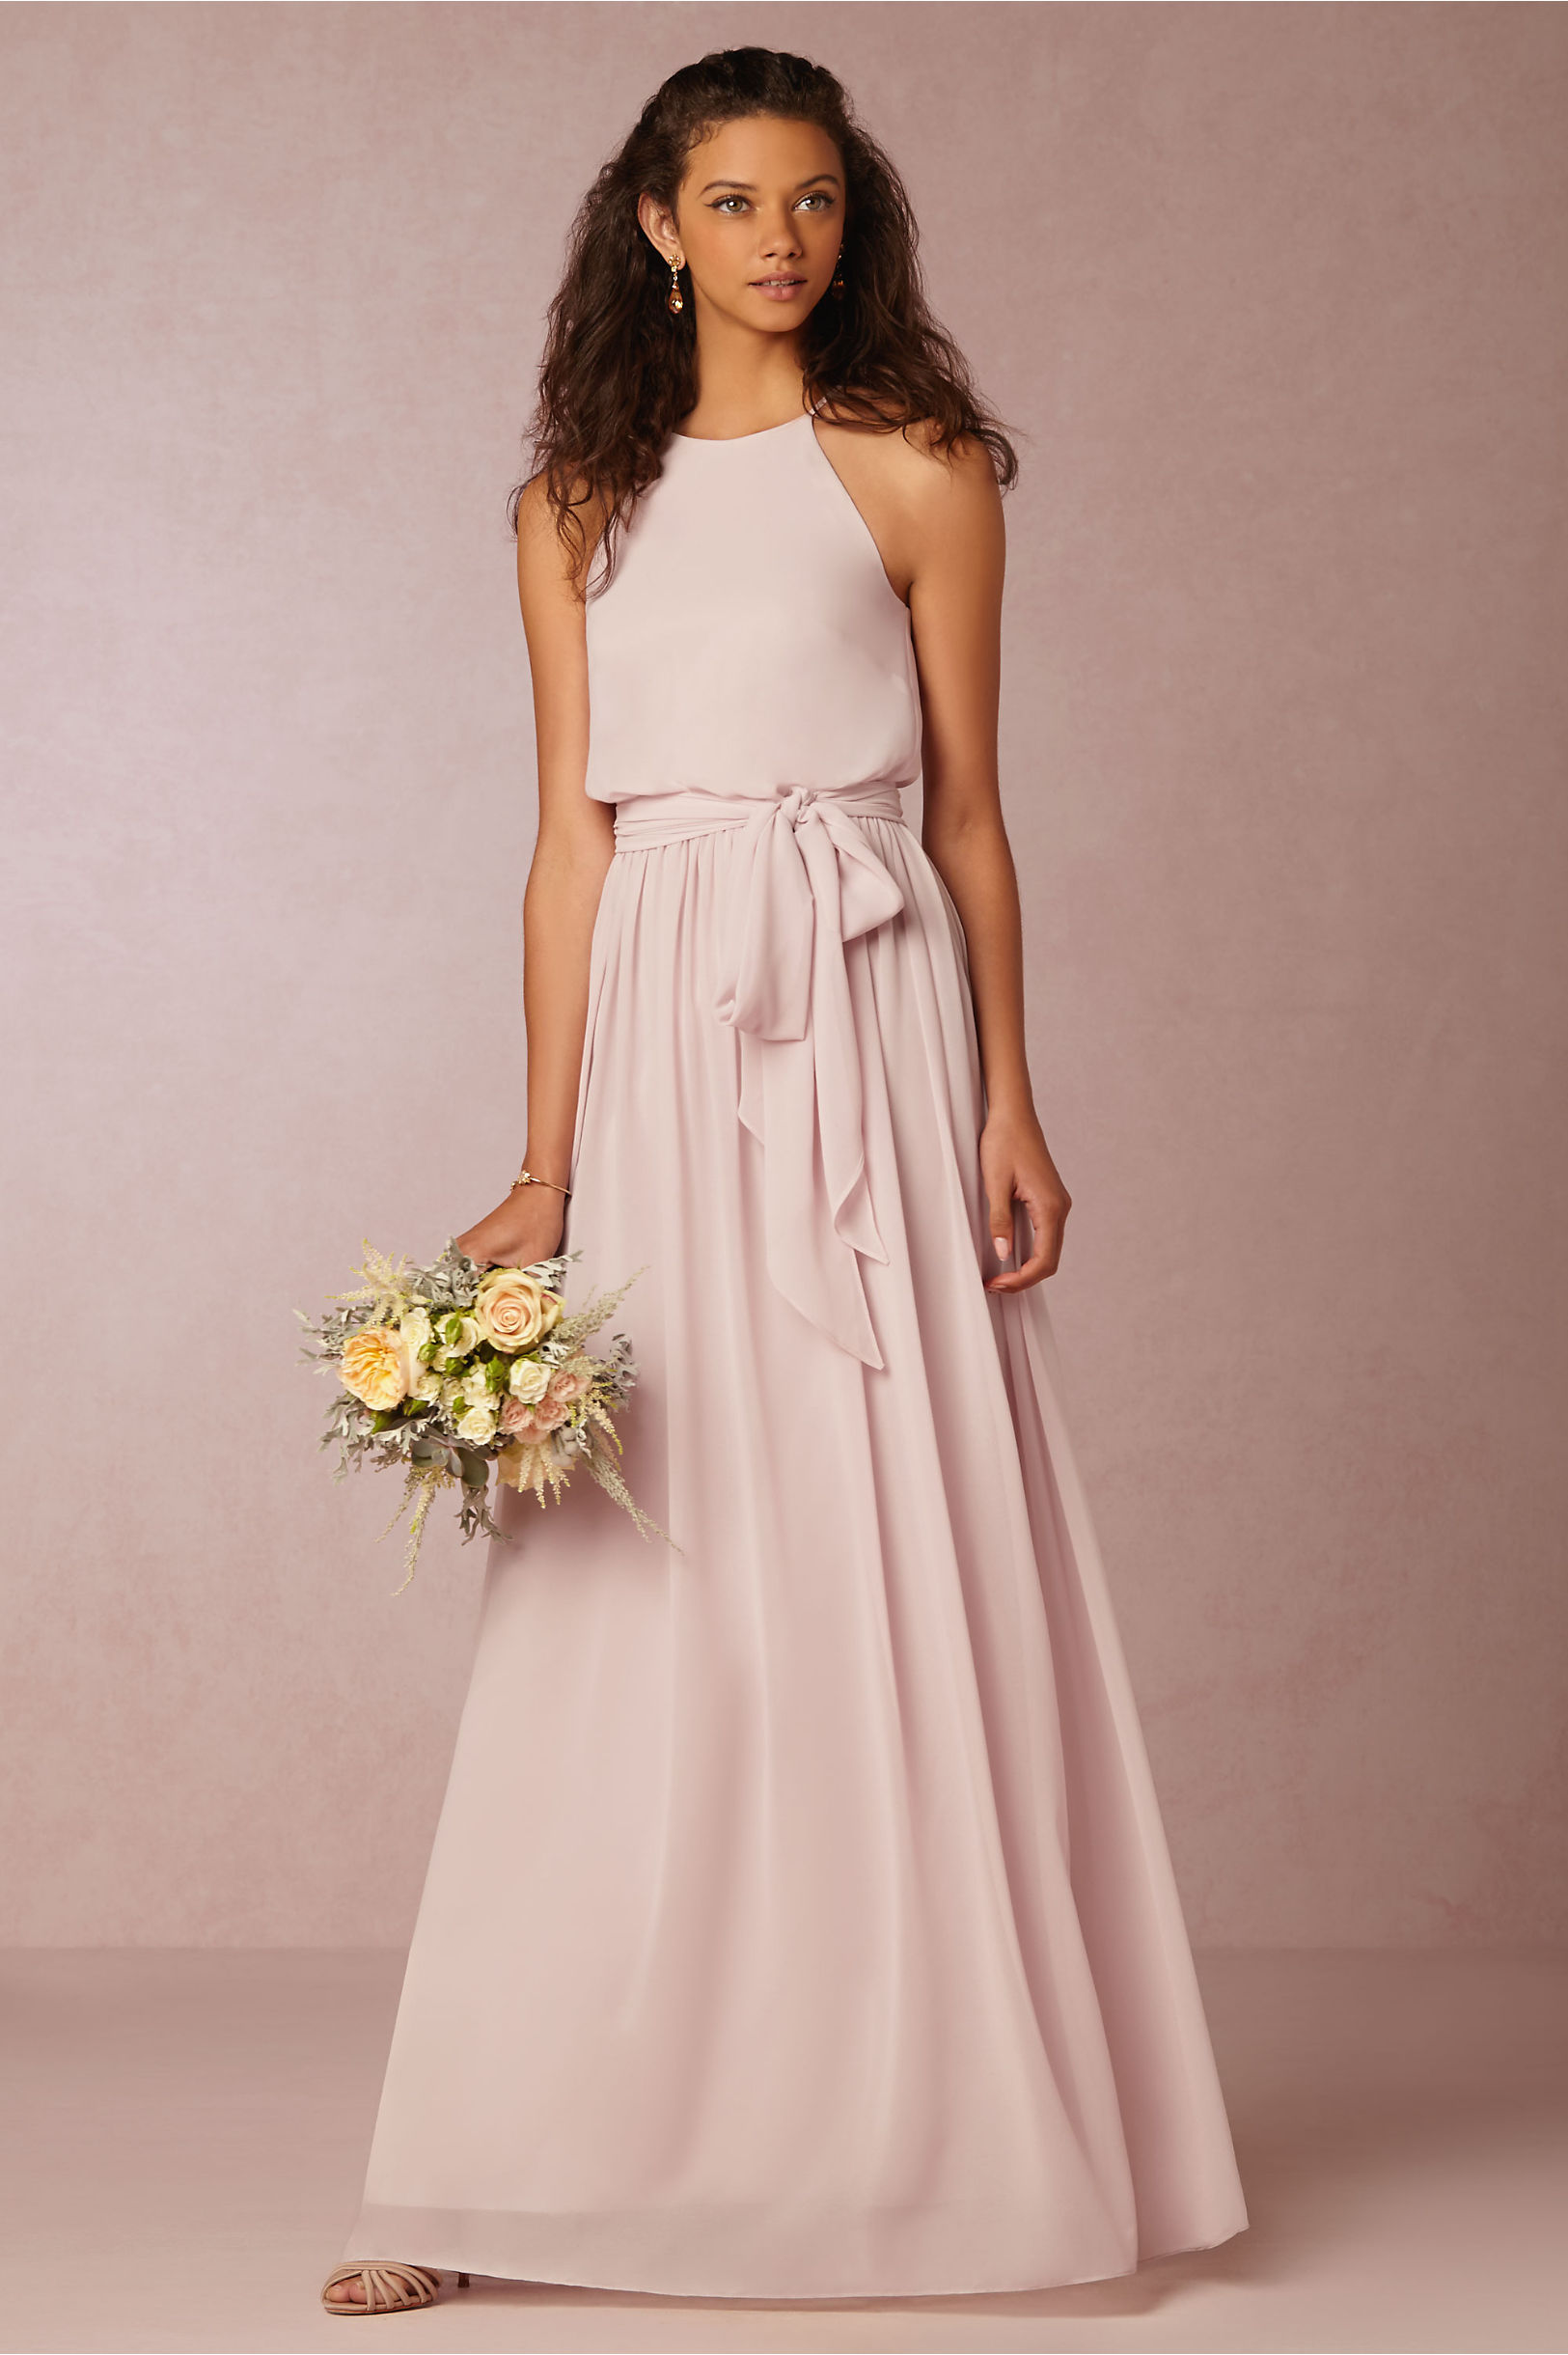 Bridesmaid Dresses Archives - It Started With Yes!